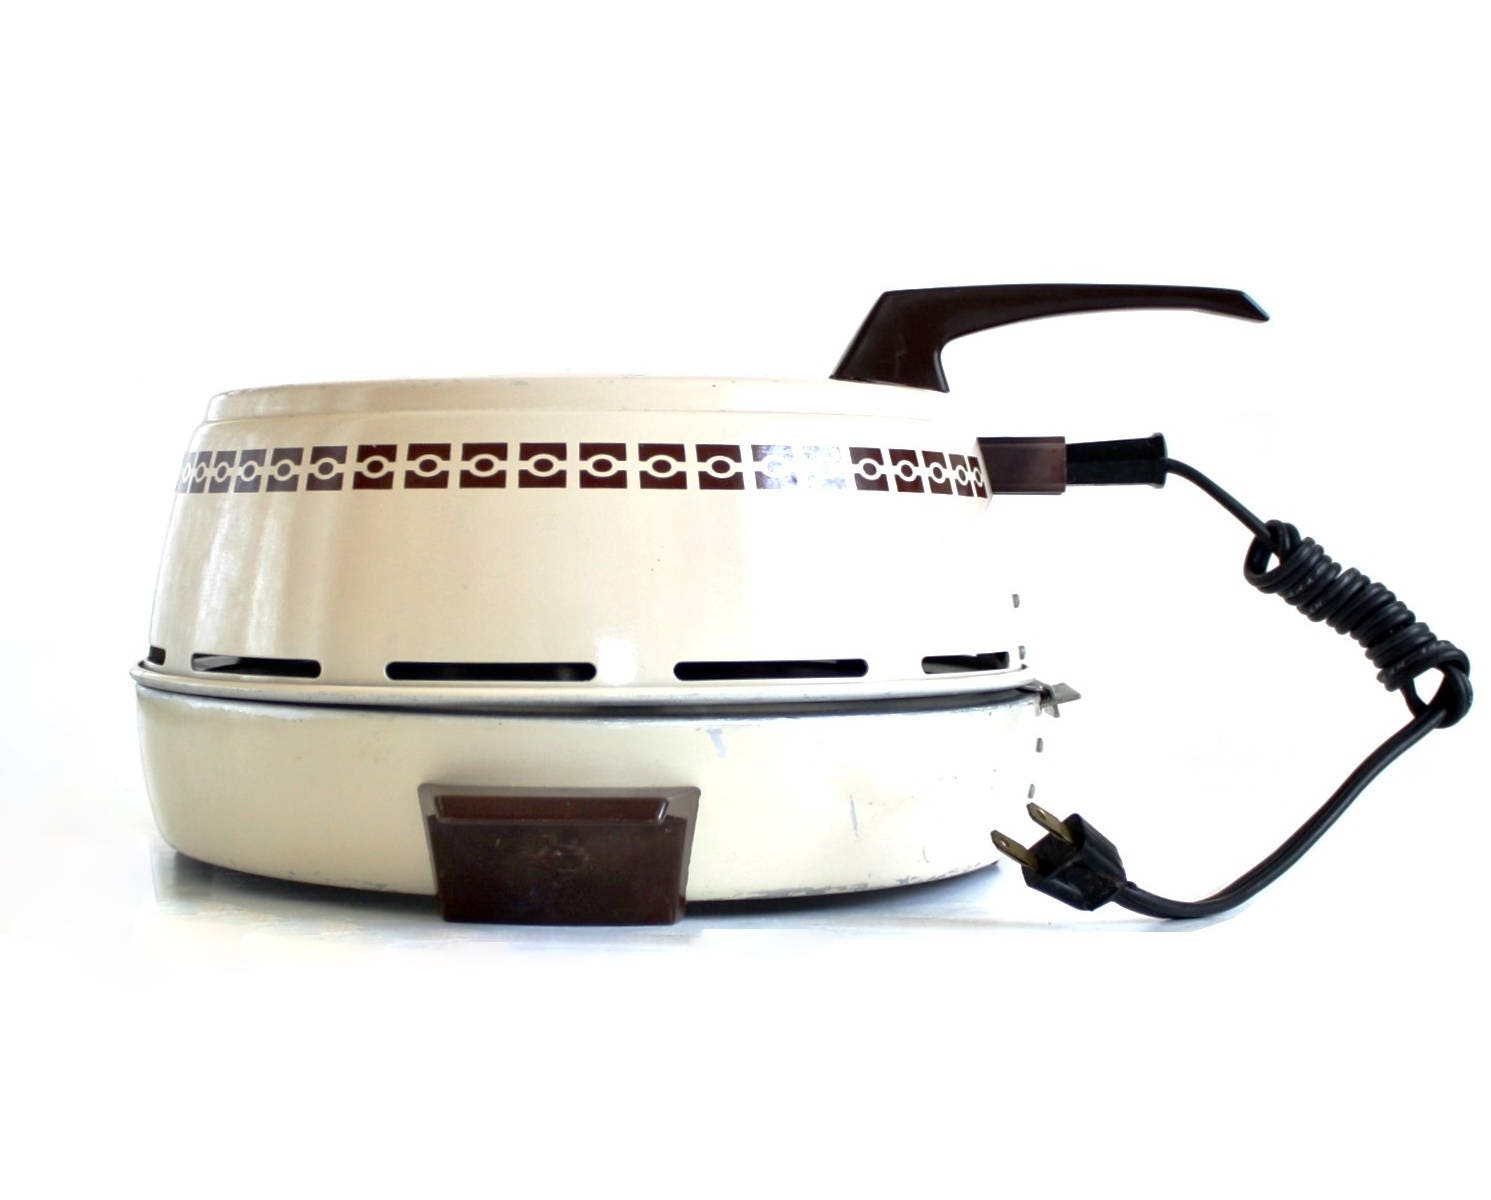 Mirro Broiler Oven Vintage Electric Kitchen Appliance M 0475